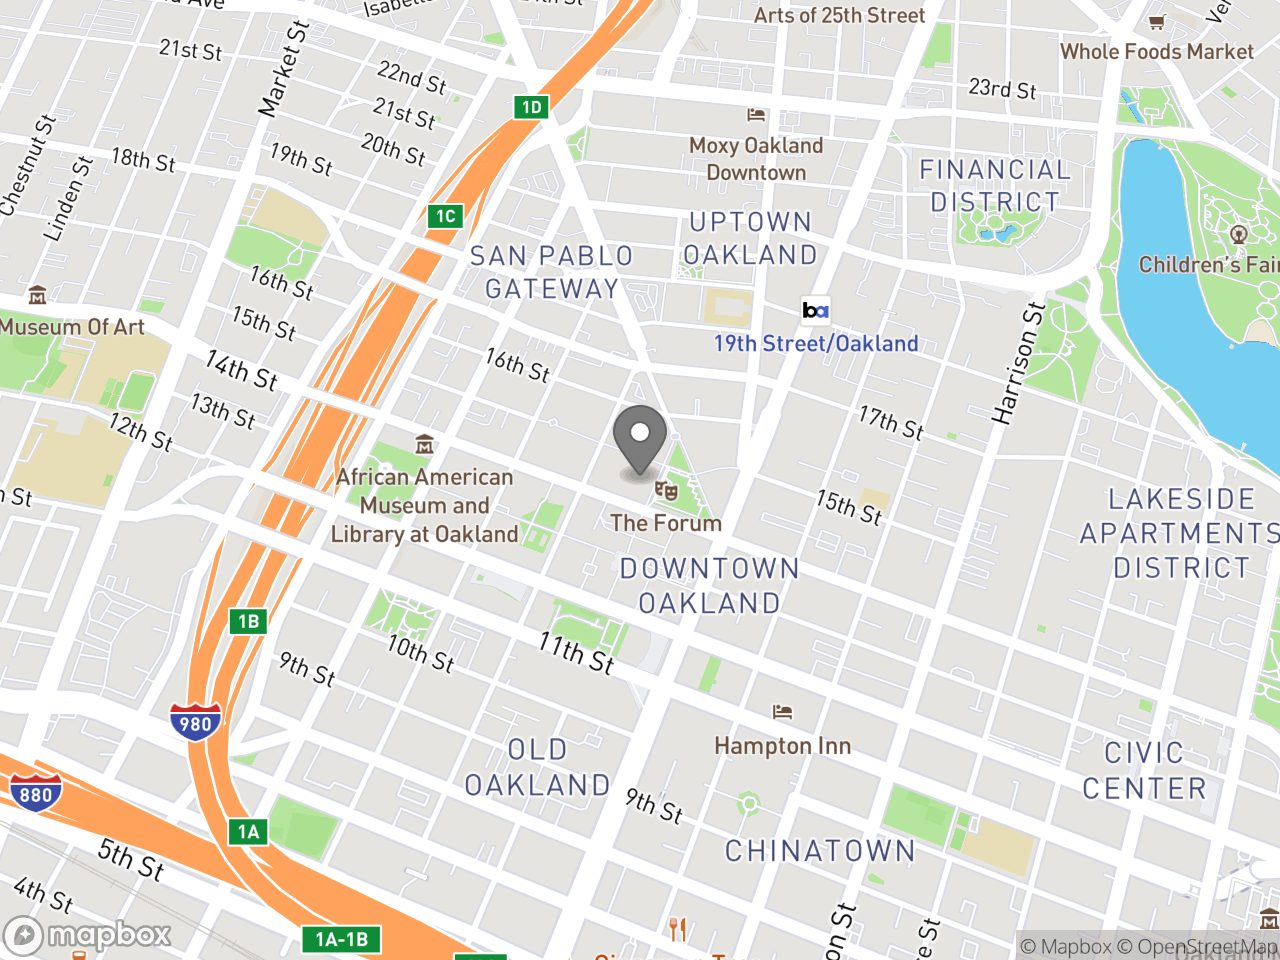 Map image for Rent Board Panel Panel January 16, 2020, located at 1 Frank H. Ogawa Plaza in Oakland, CA 94612